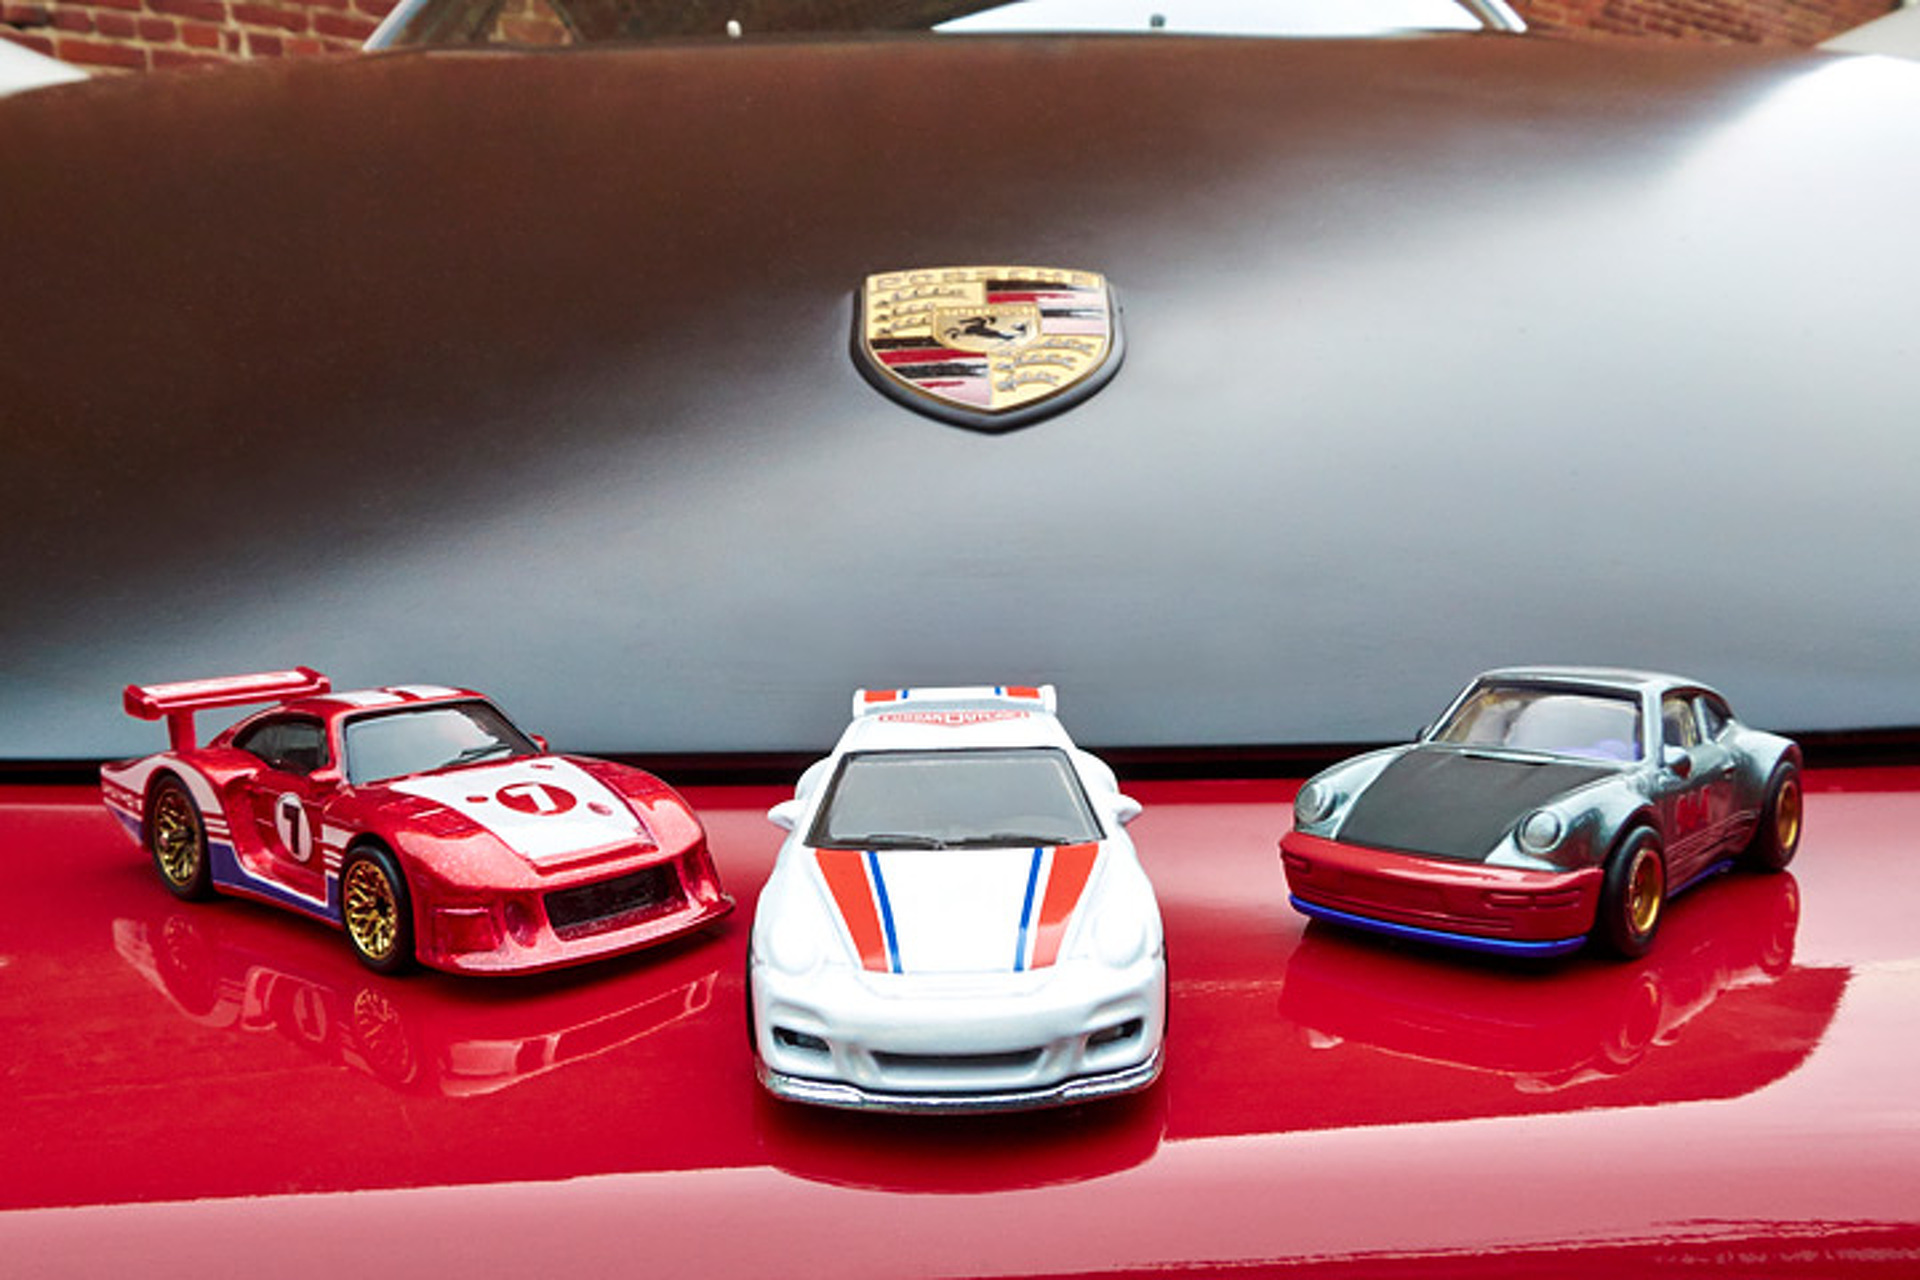 Five 'Outlaw' Porsches Have Joined the Hot Wheels Family